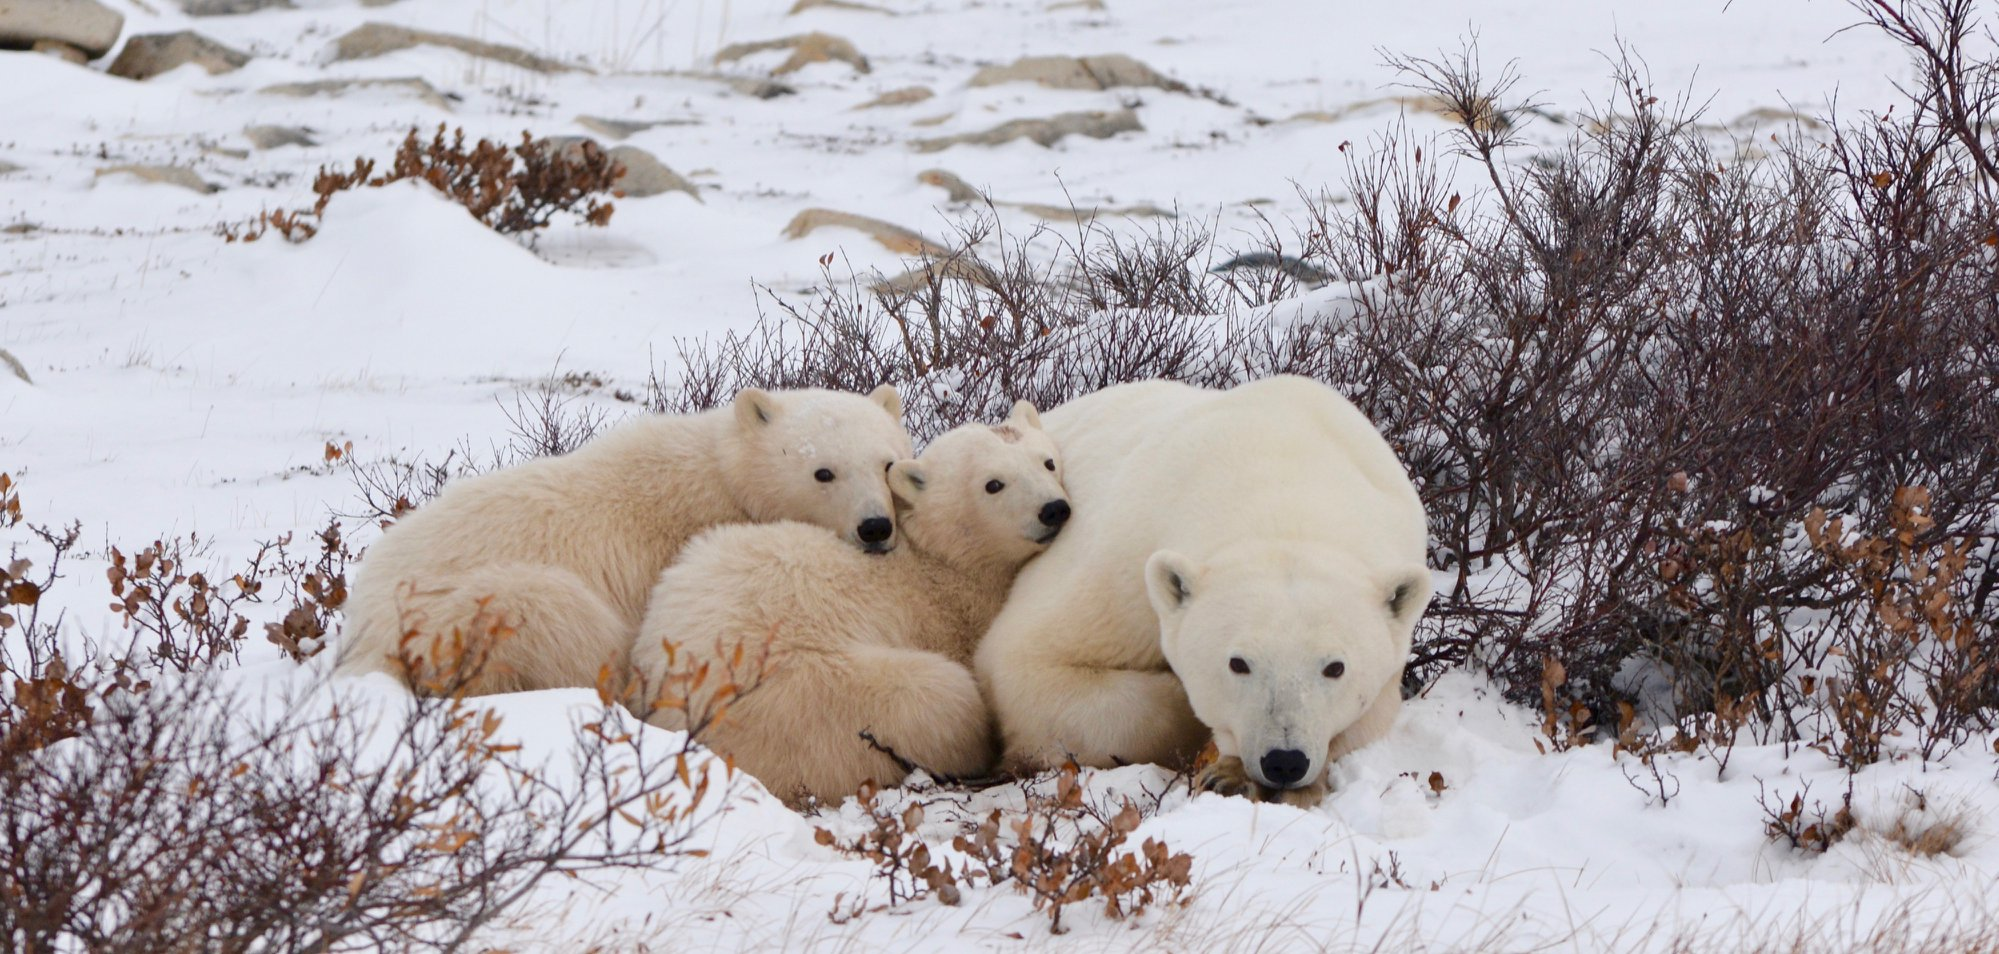 Tours - Nanuqtours offers a variety of different tours for those wanting to get up close with some on the Arctic's most spectacular wildlife!